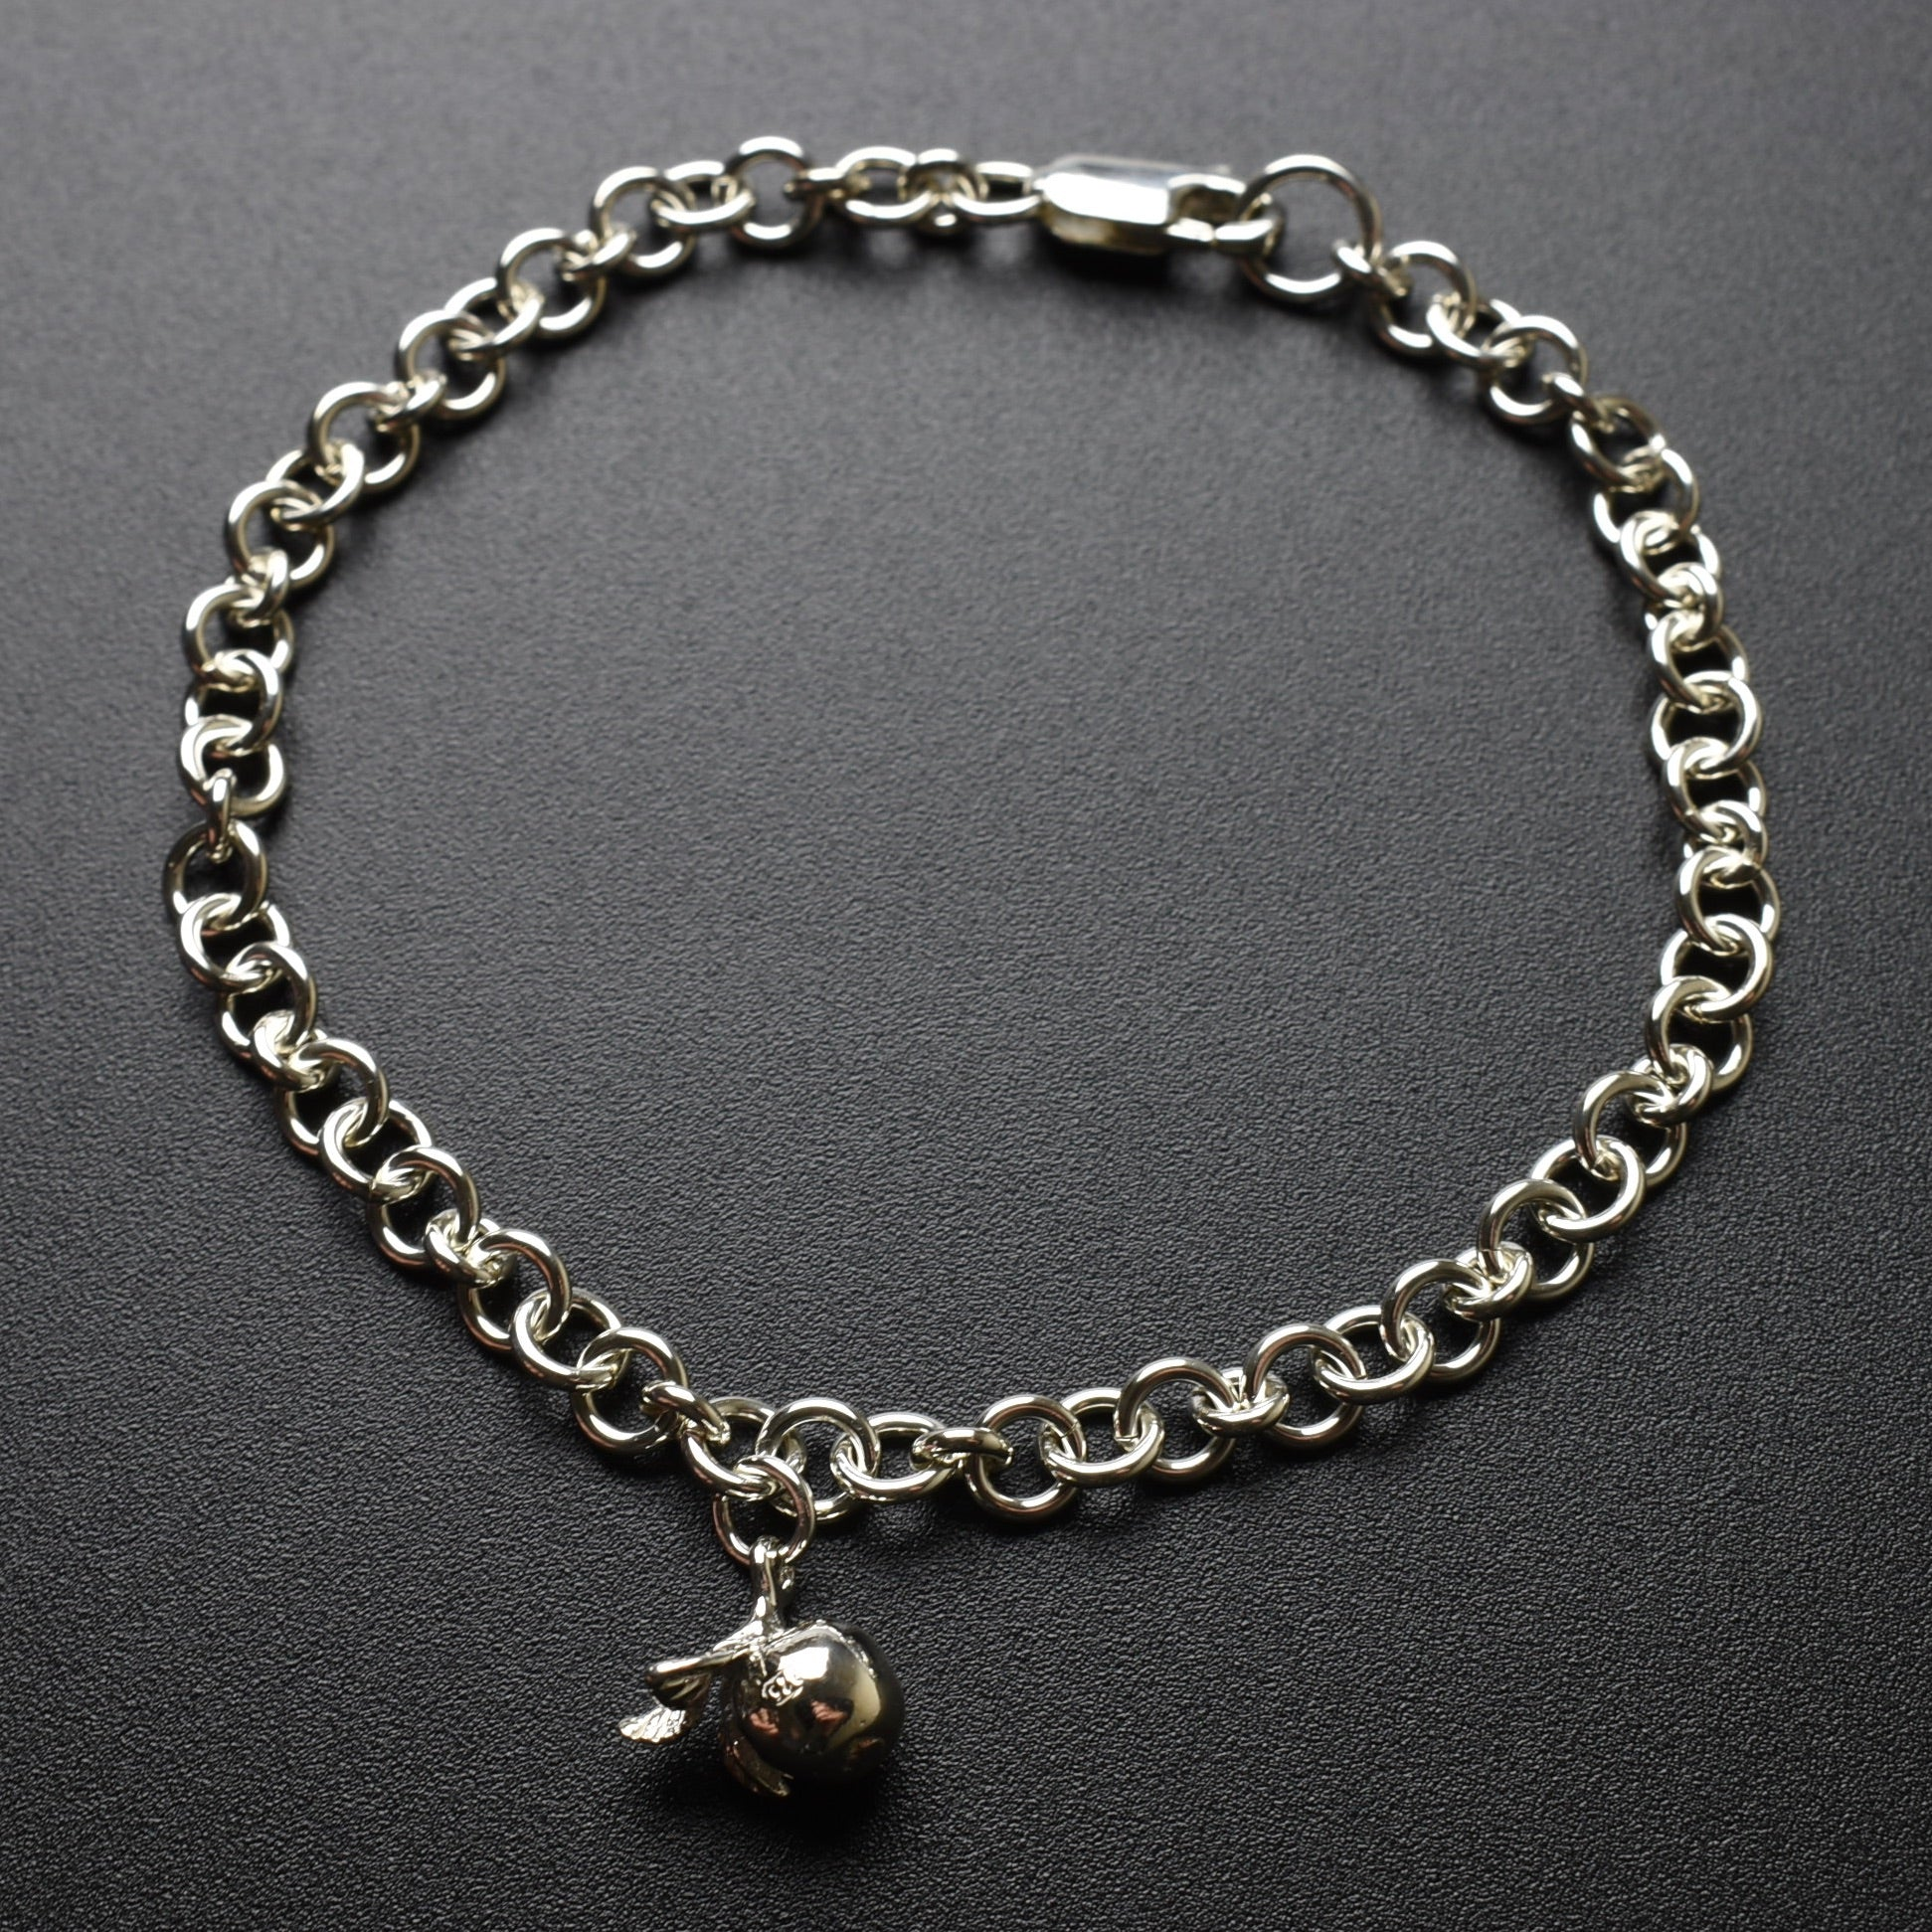 Apple Charm Chain Bracelet